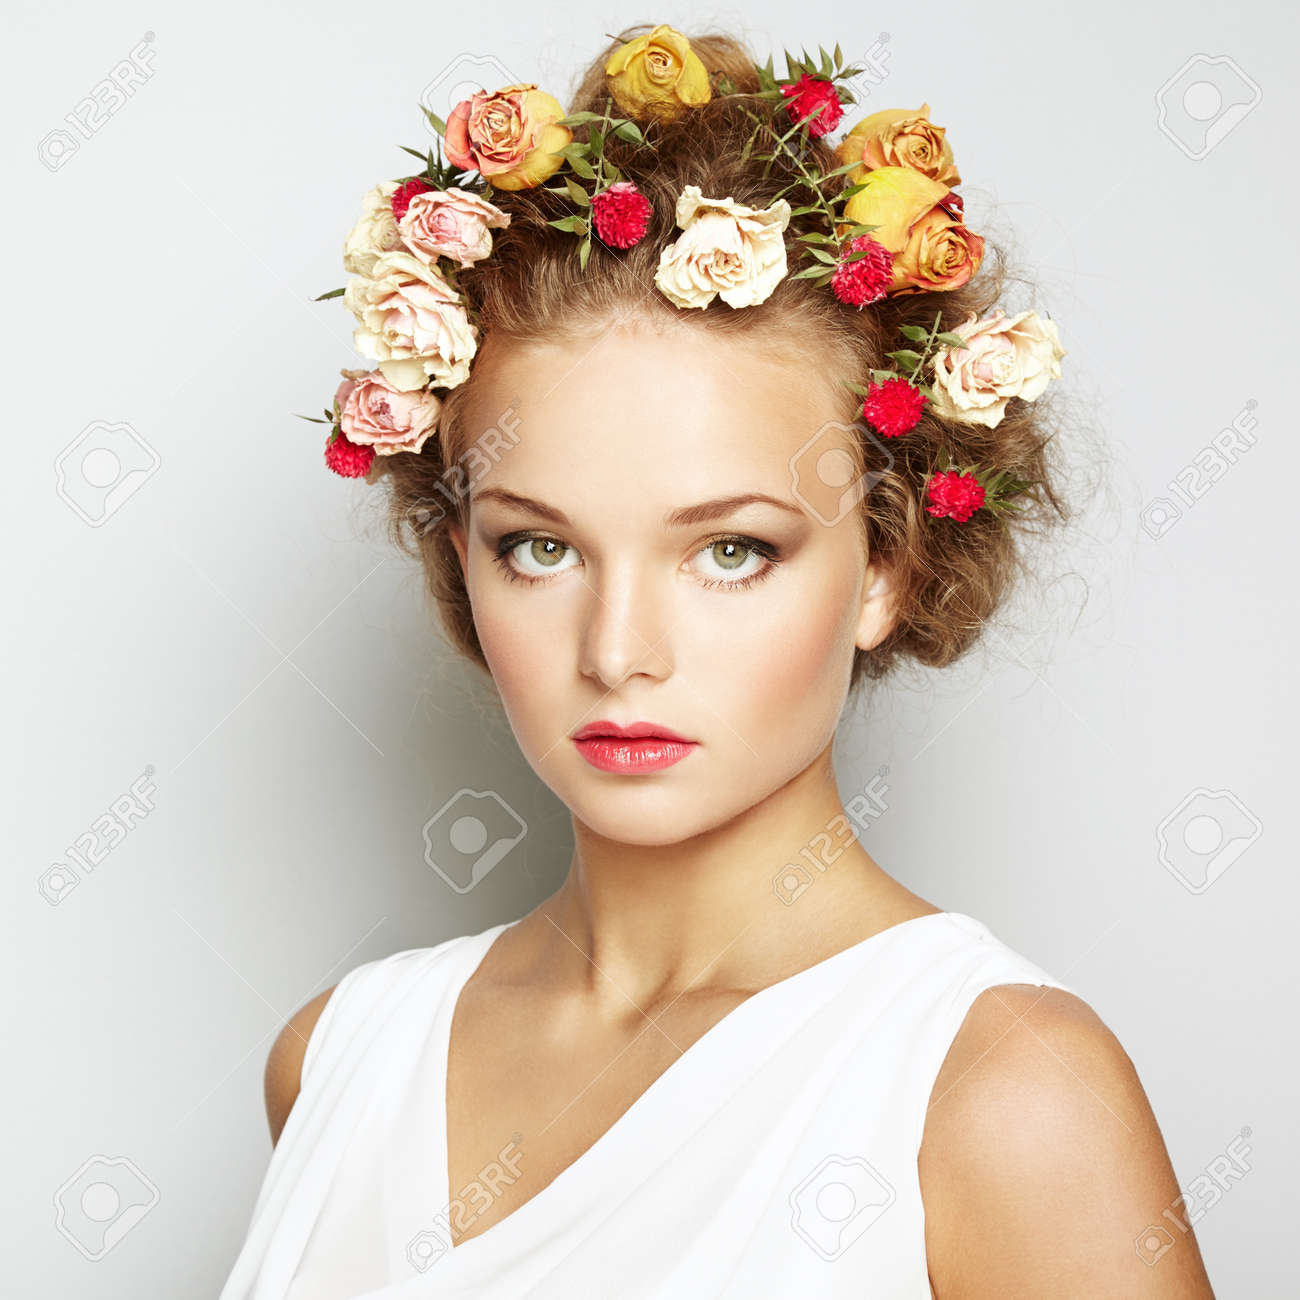 Beautiful woman with flowers perfect face skin beauty portrait beautiful woman with flowers perfect face skin beauty portrait fashion photo stock photo dhlflorist Gallery